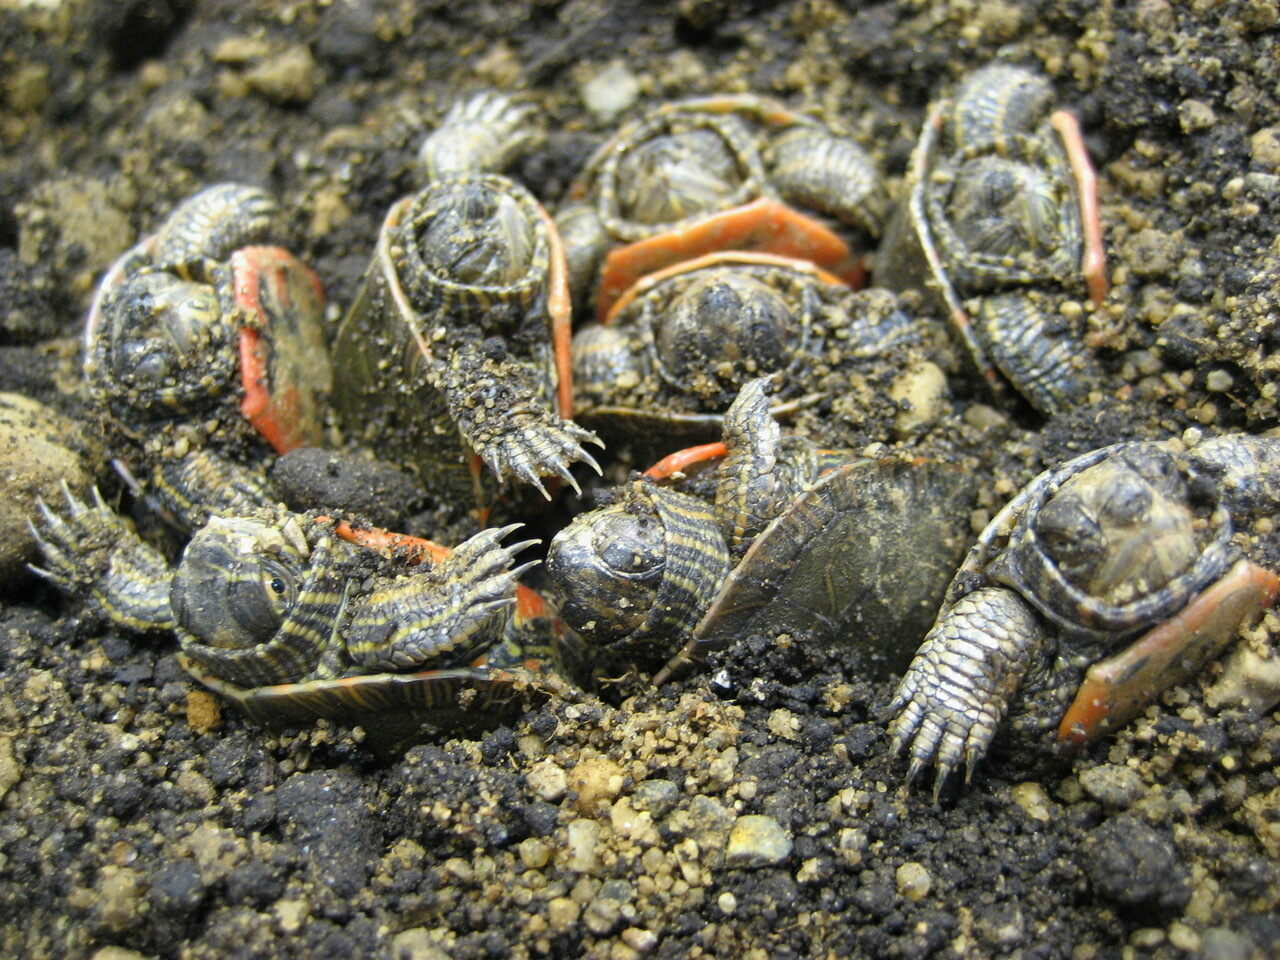 Painted turtle hatchlings can spend a winter burrowed in the sand where they're born, and freeze tolerance helps them survive it.